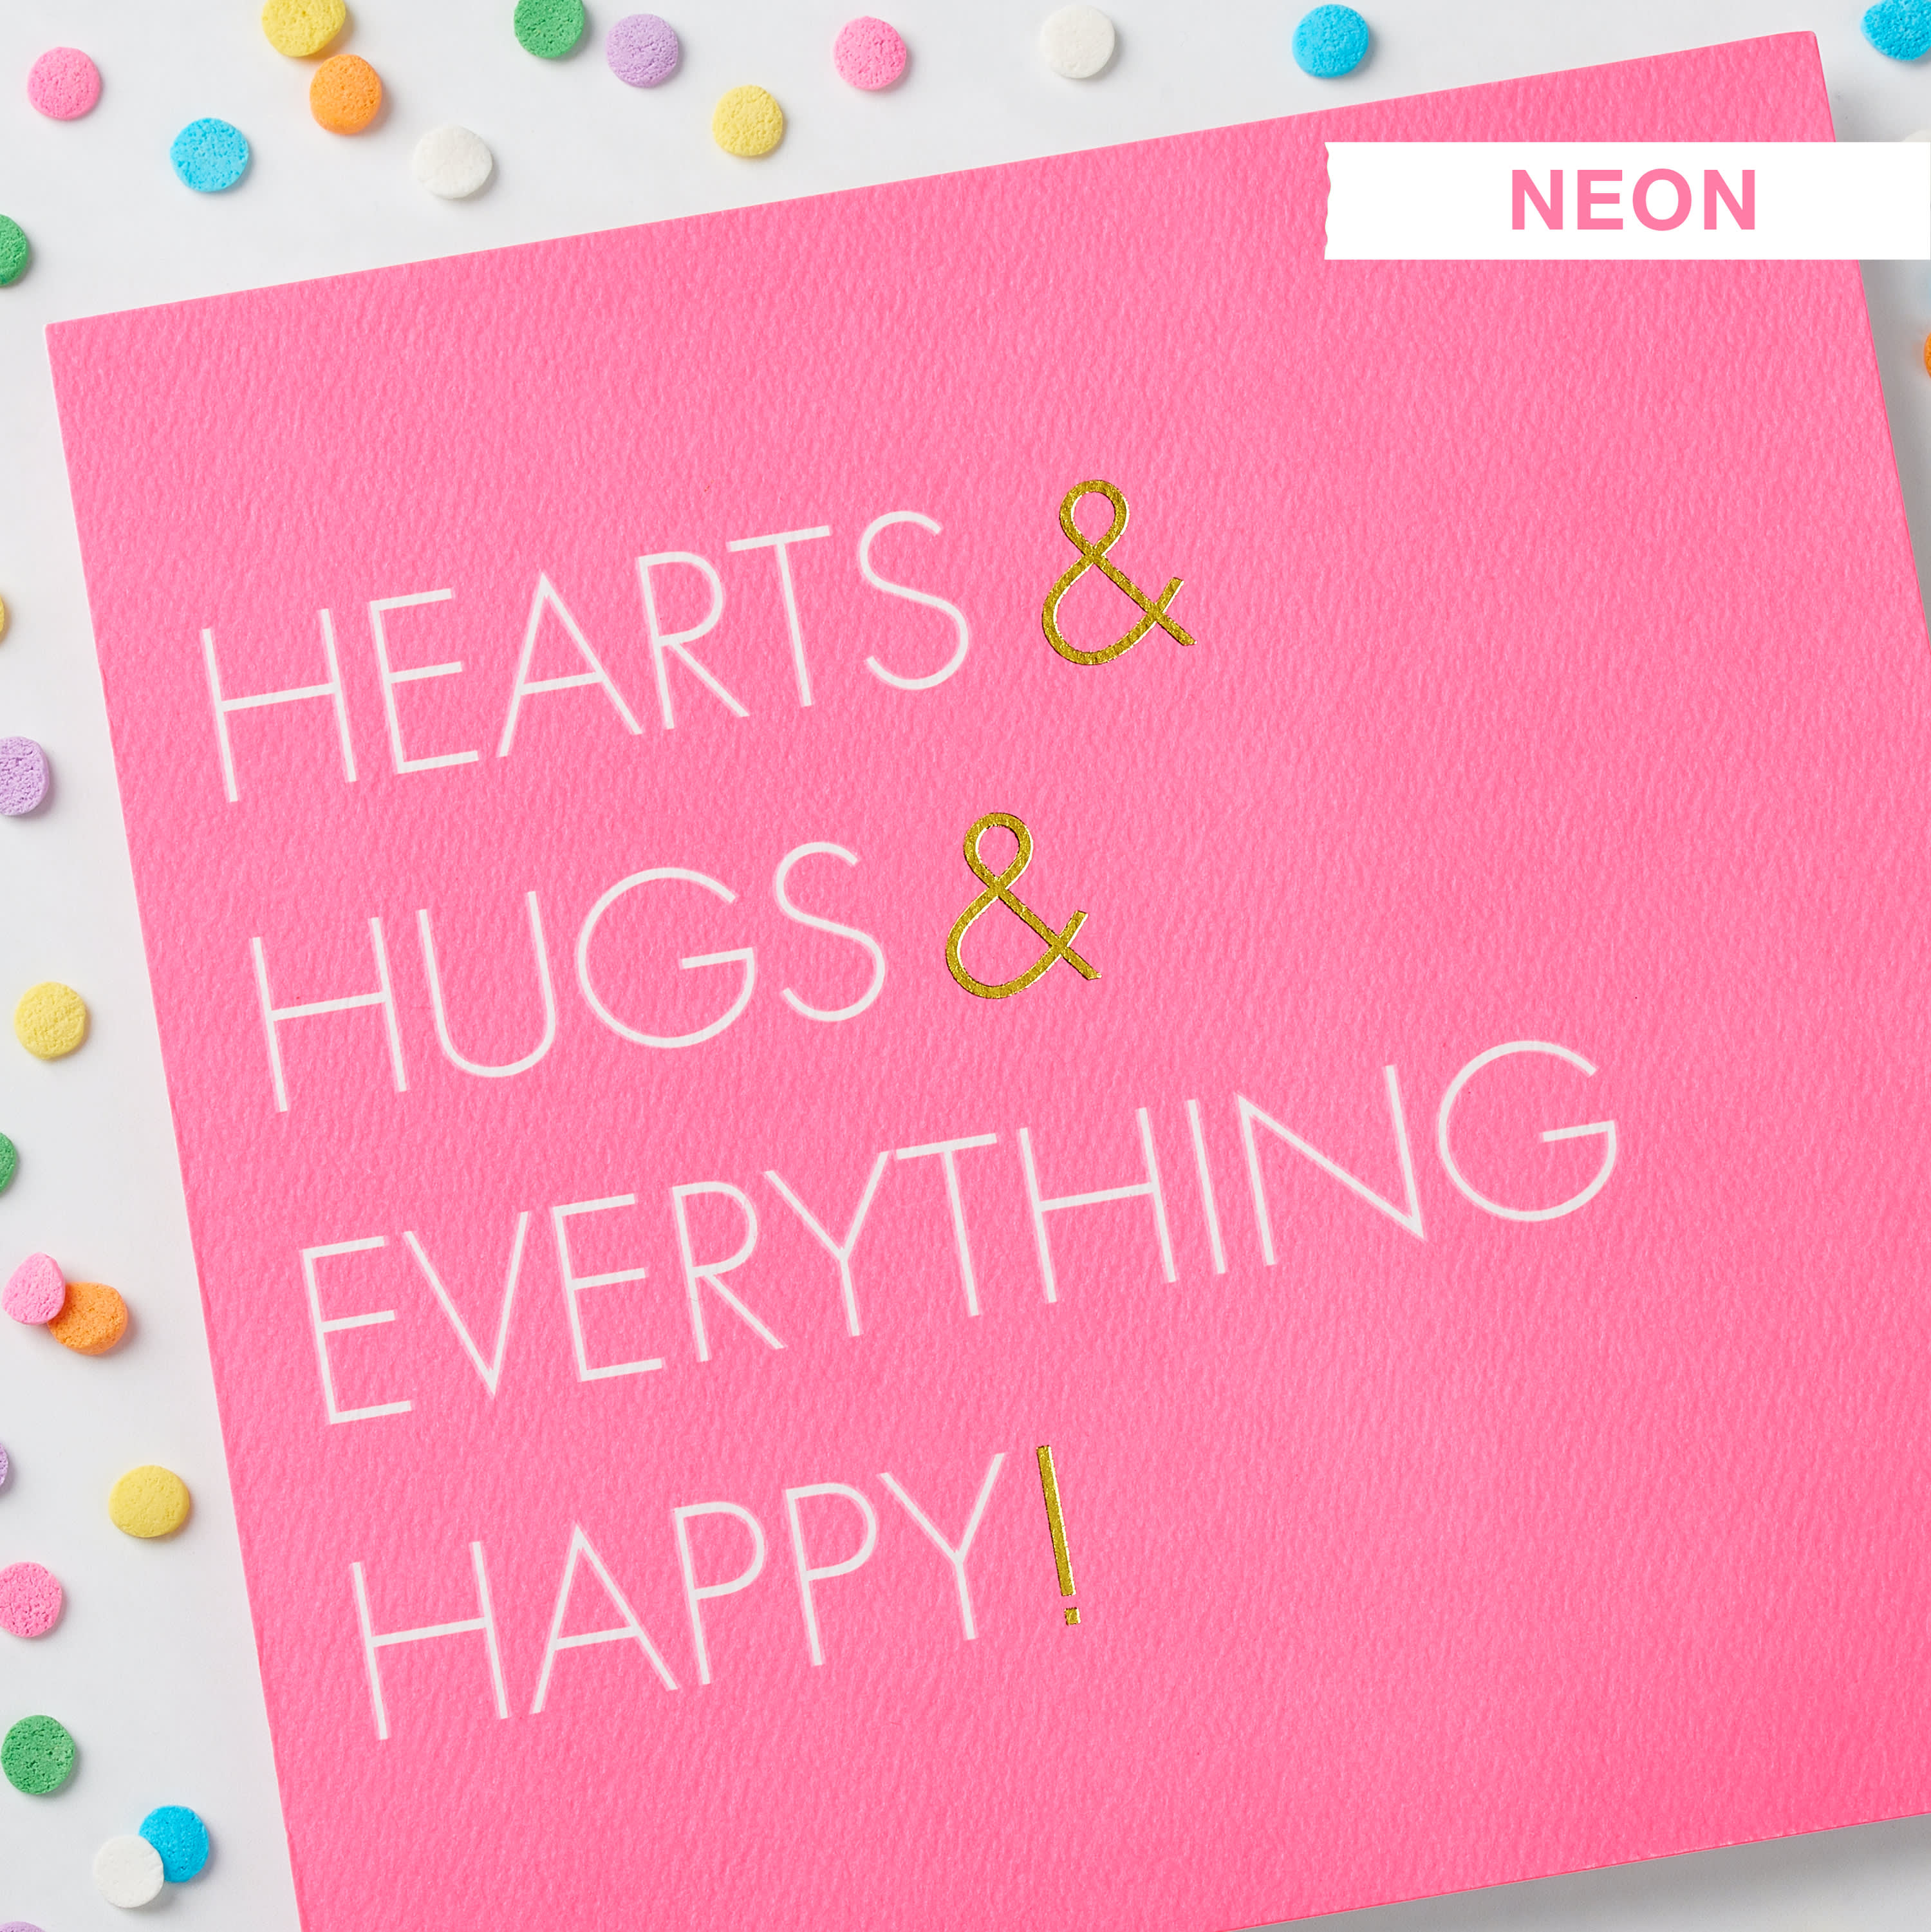 Hugs Valentine's Day Cards, 6-Count image